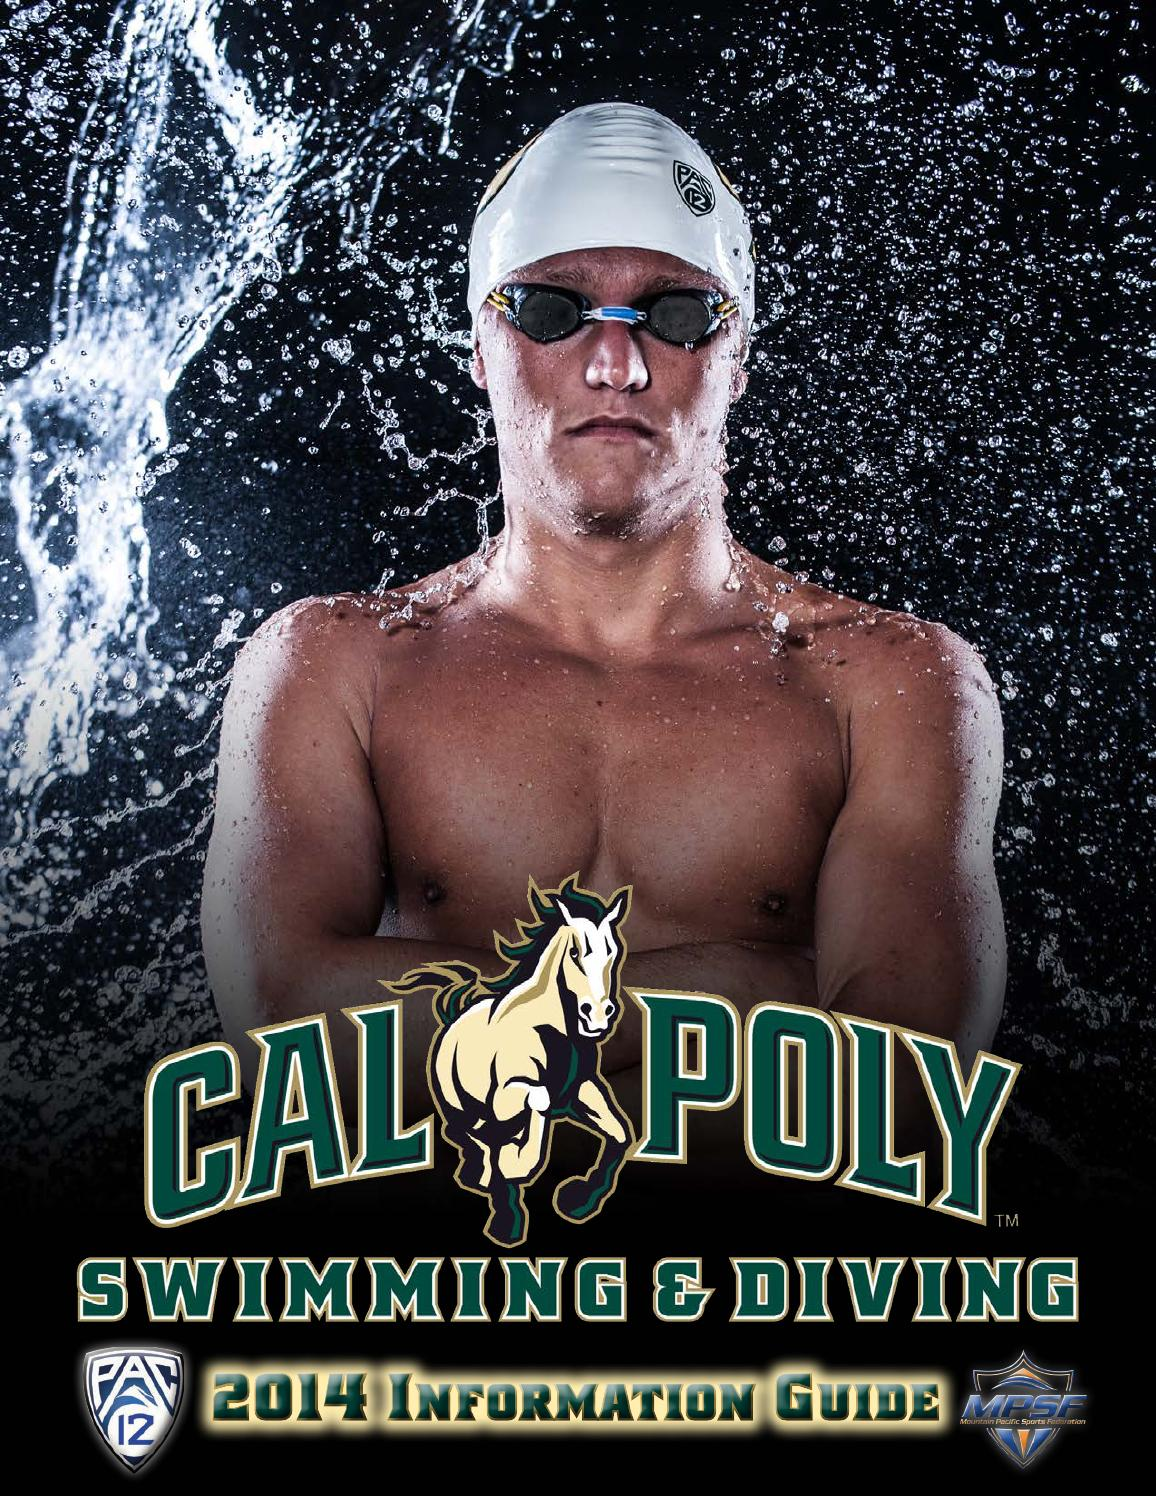 2014 cal poly swimming and diving information guide by cal poly